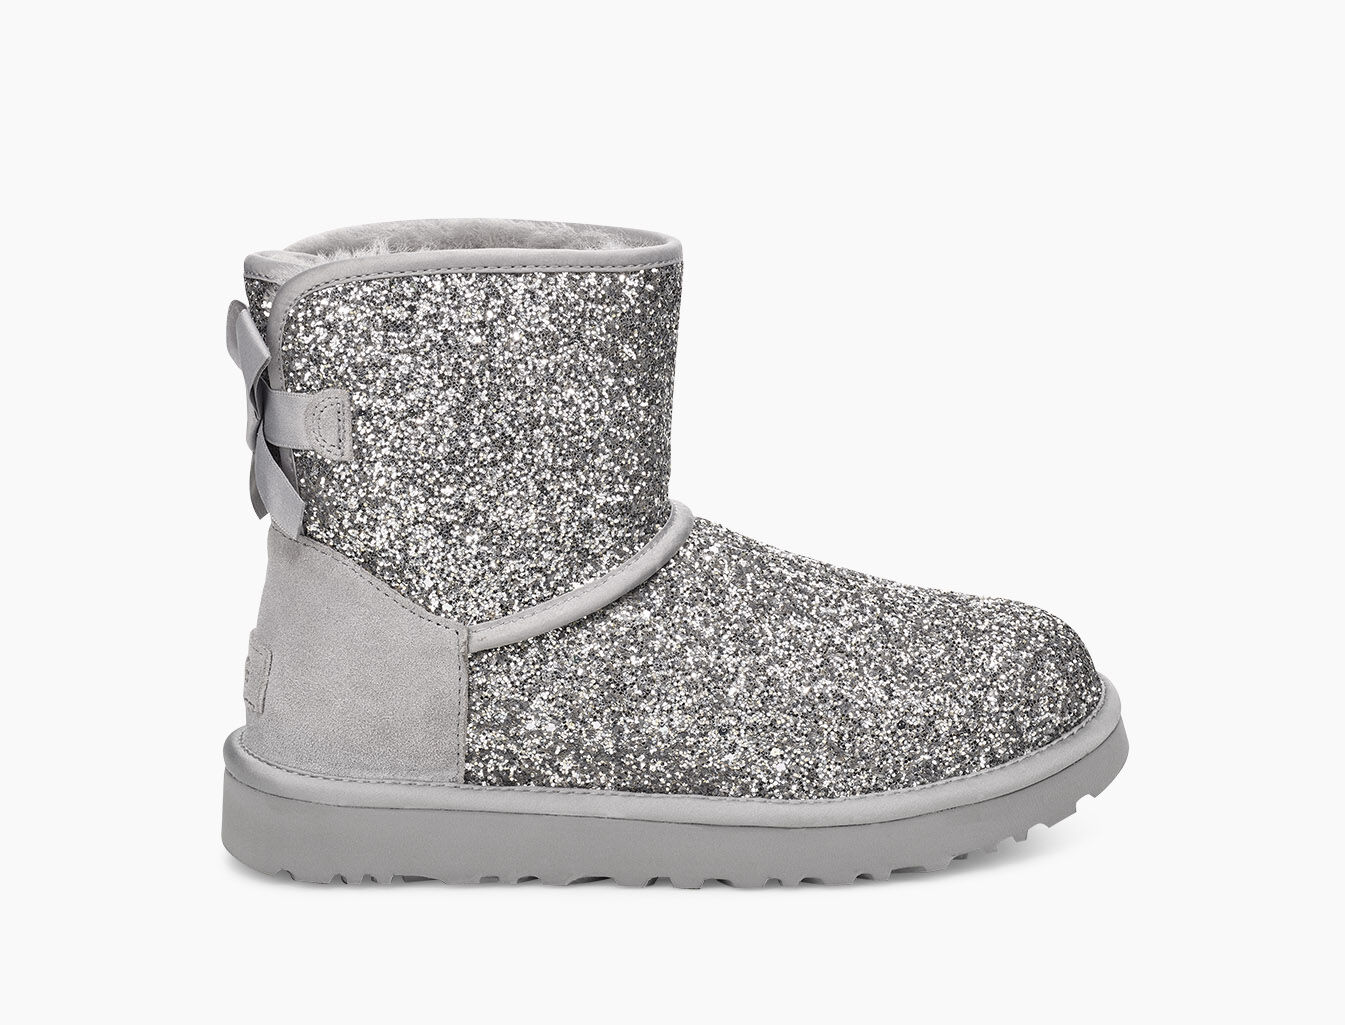 Genuine UGG® Boots, Slippers & UGG® Products Online